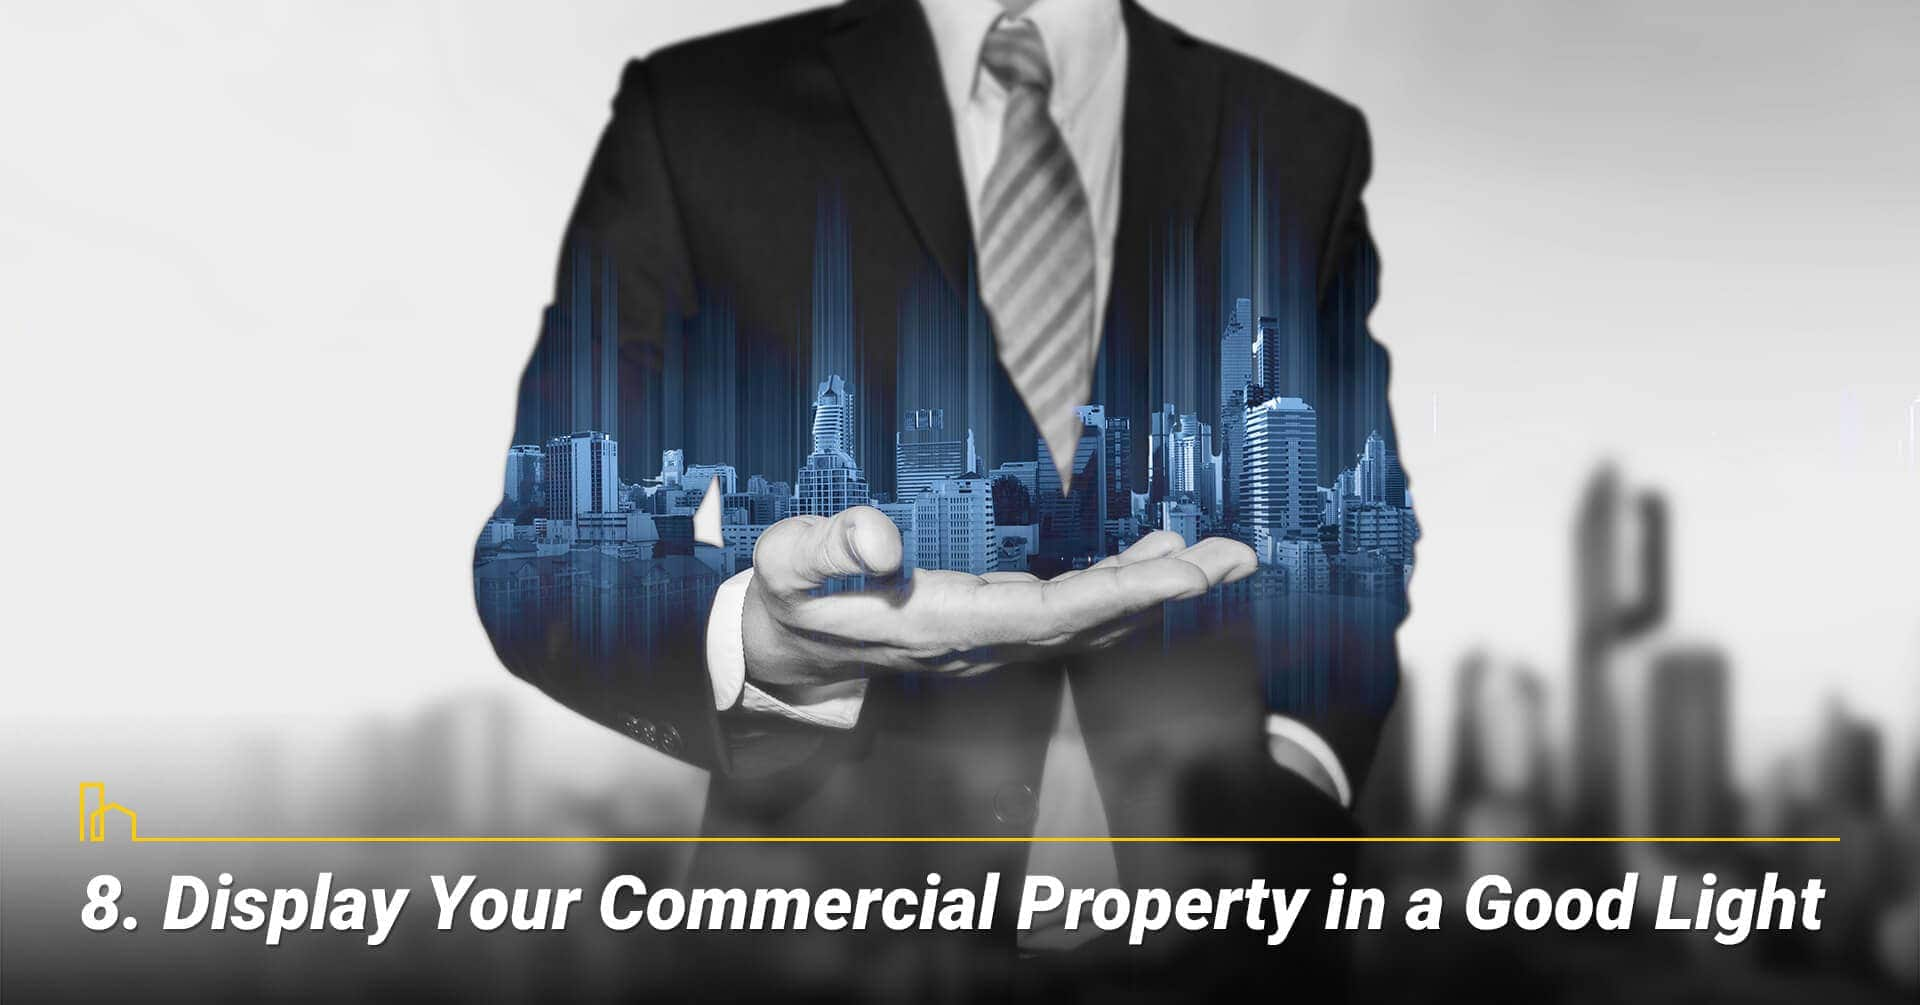 Display Your Commercial Property in a Good Light